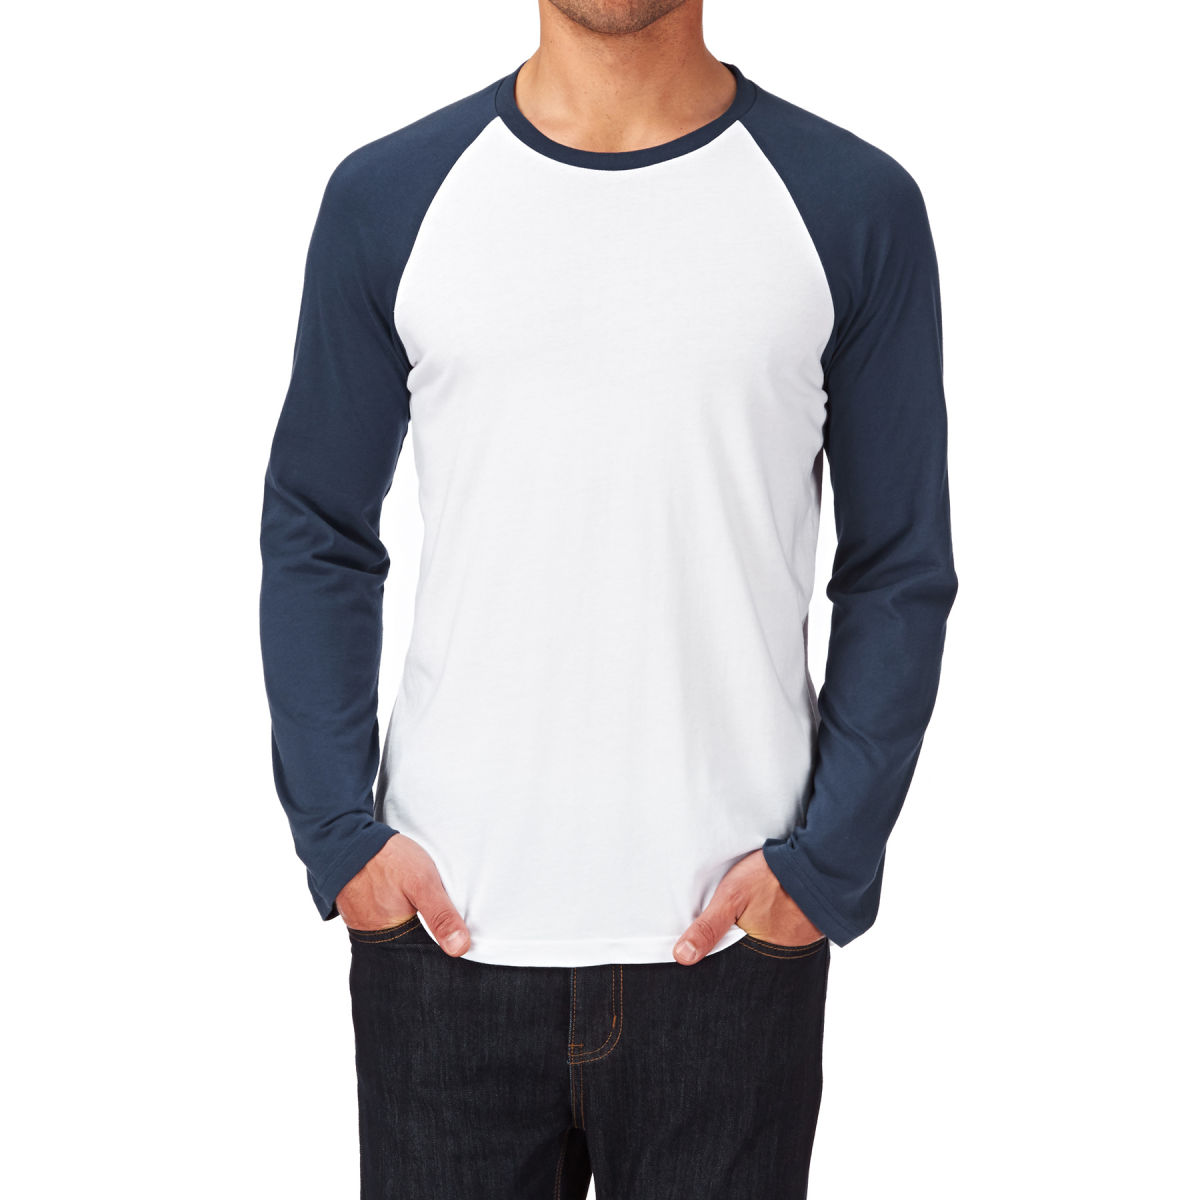 Gildan Blank T-Shirts from $ Guaranteed Lowest Prices on Blank, Sweatshirts, Blank Long Sleeve Shirts, Polo Shirts, Jackets, Tank Tops, Bags and Caps.